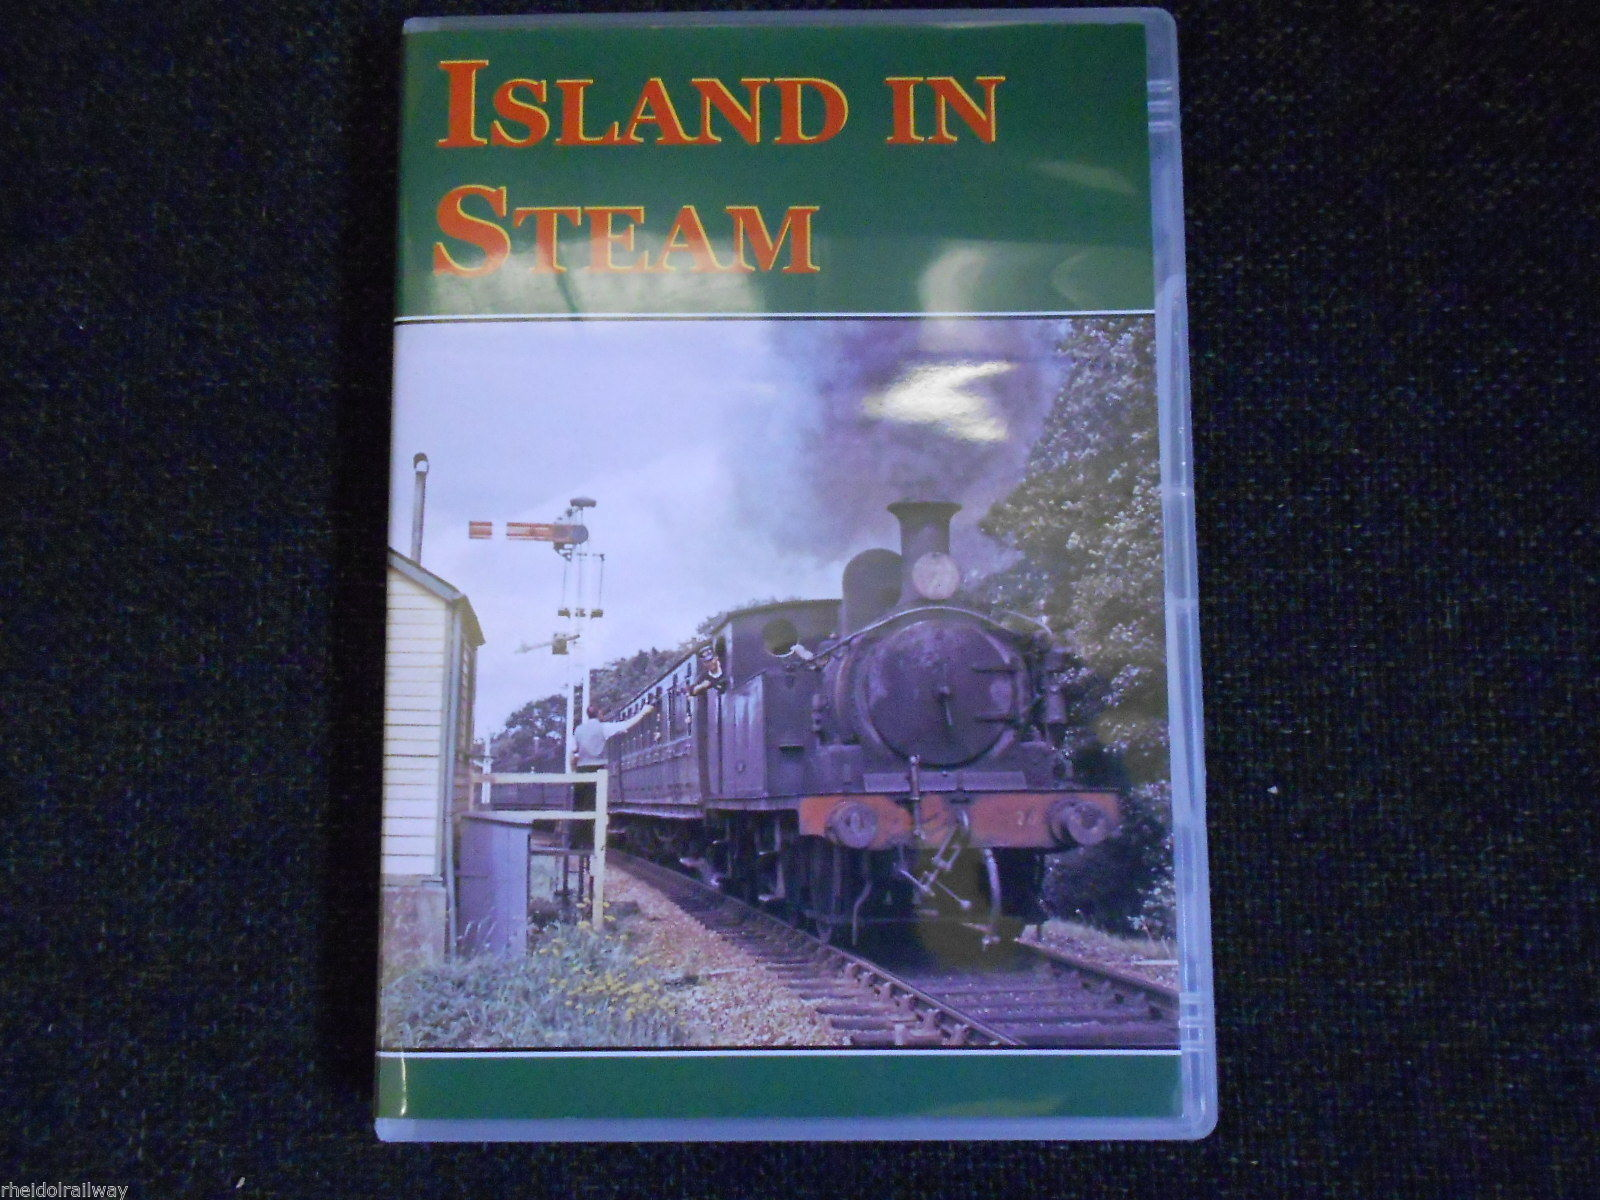 Island in Steam Cowes Shanklin Newport Ryde Sandown - The Vale of Rheidol Railway